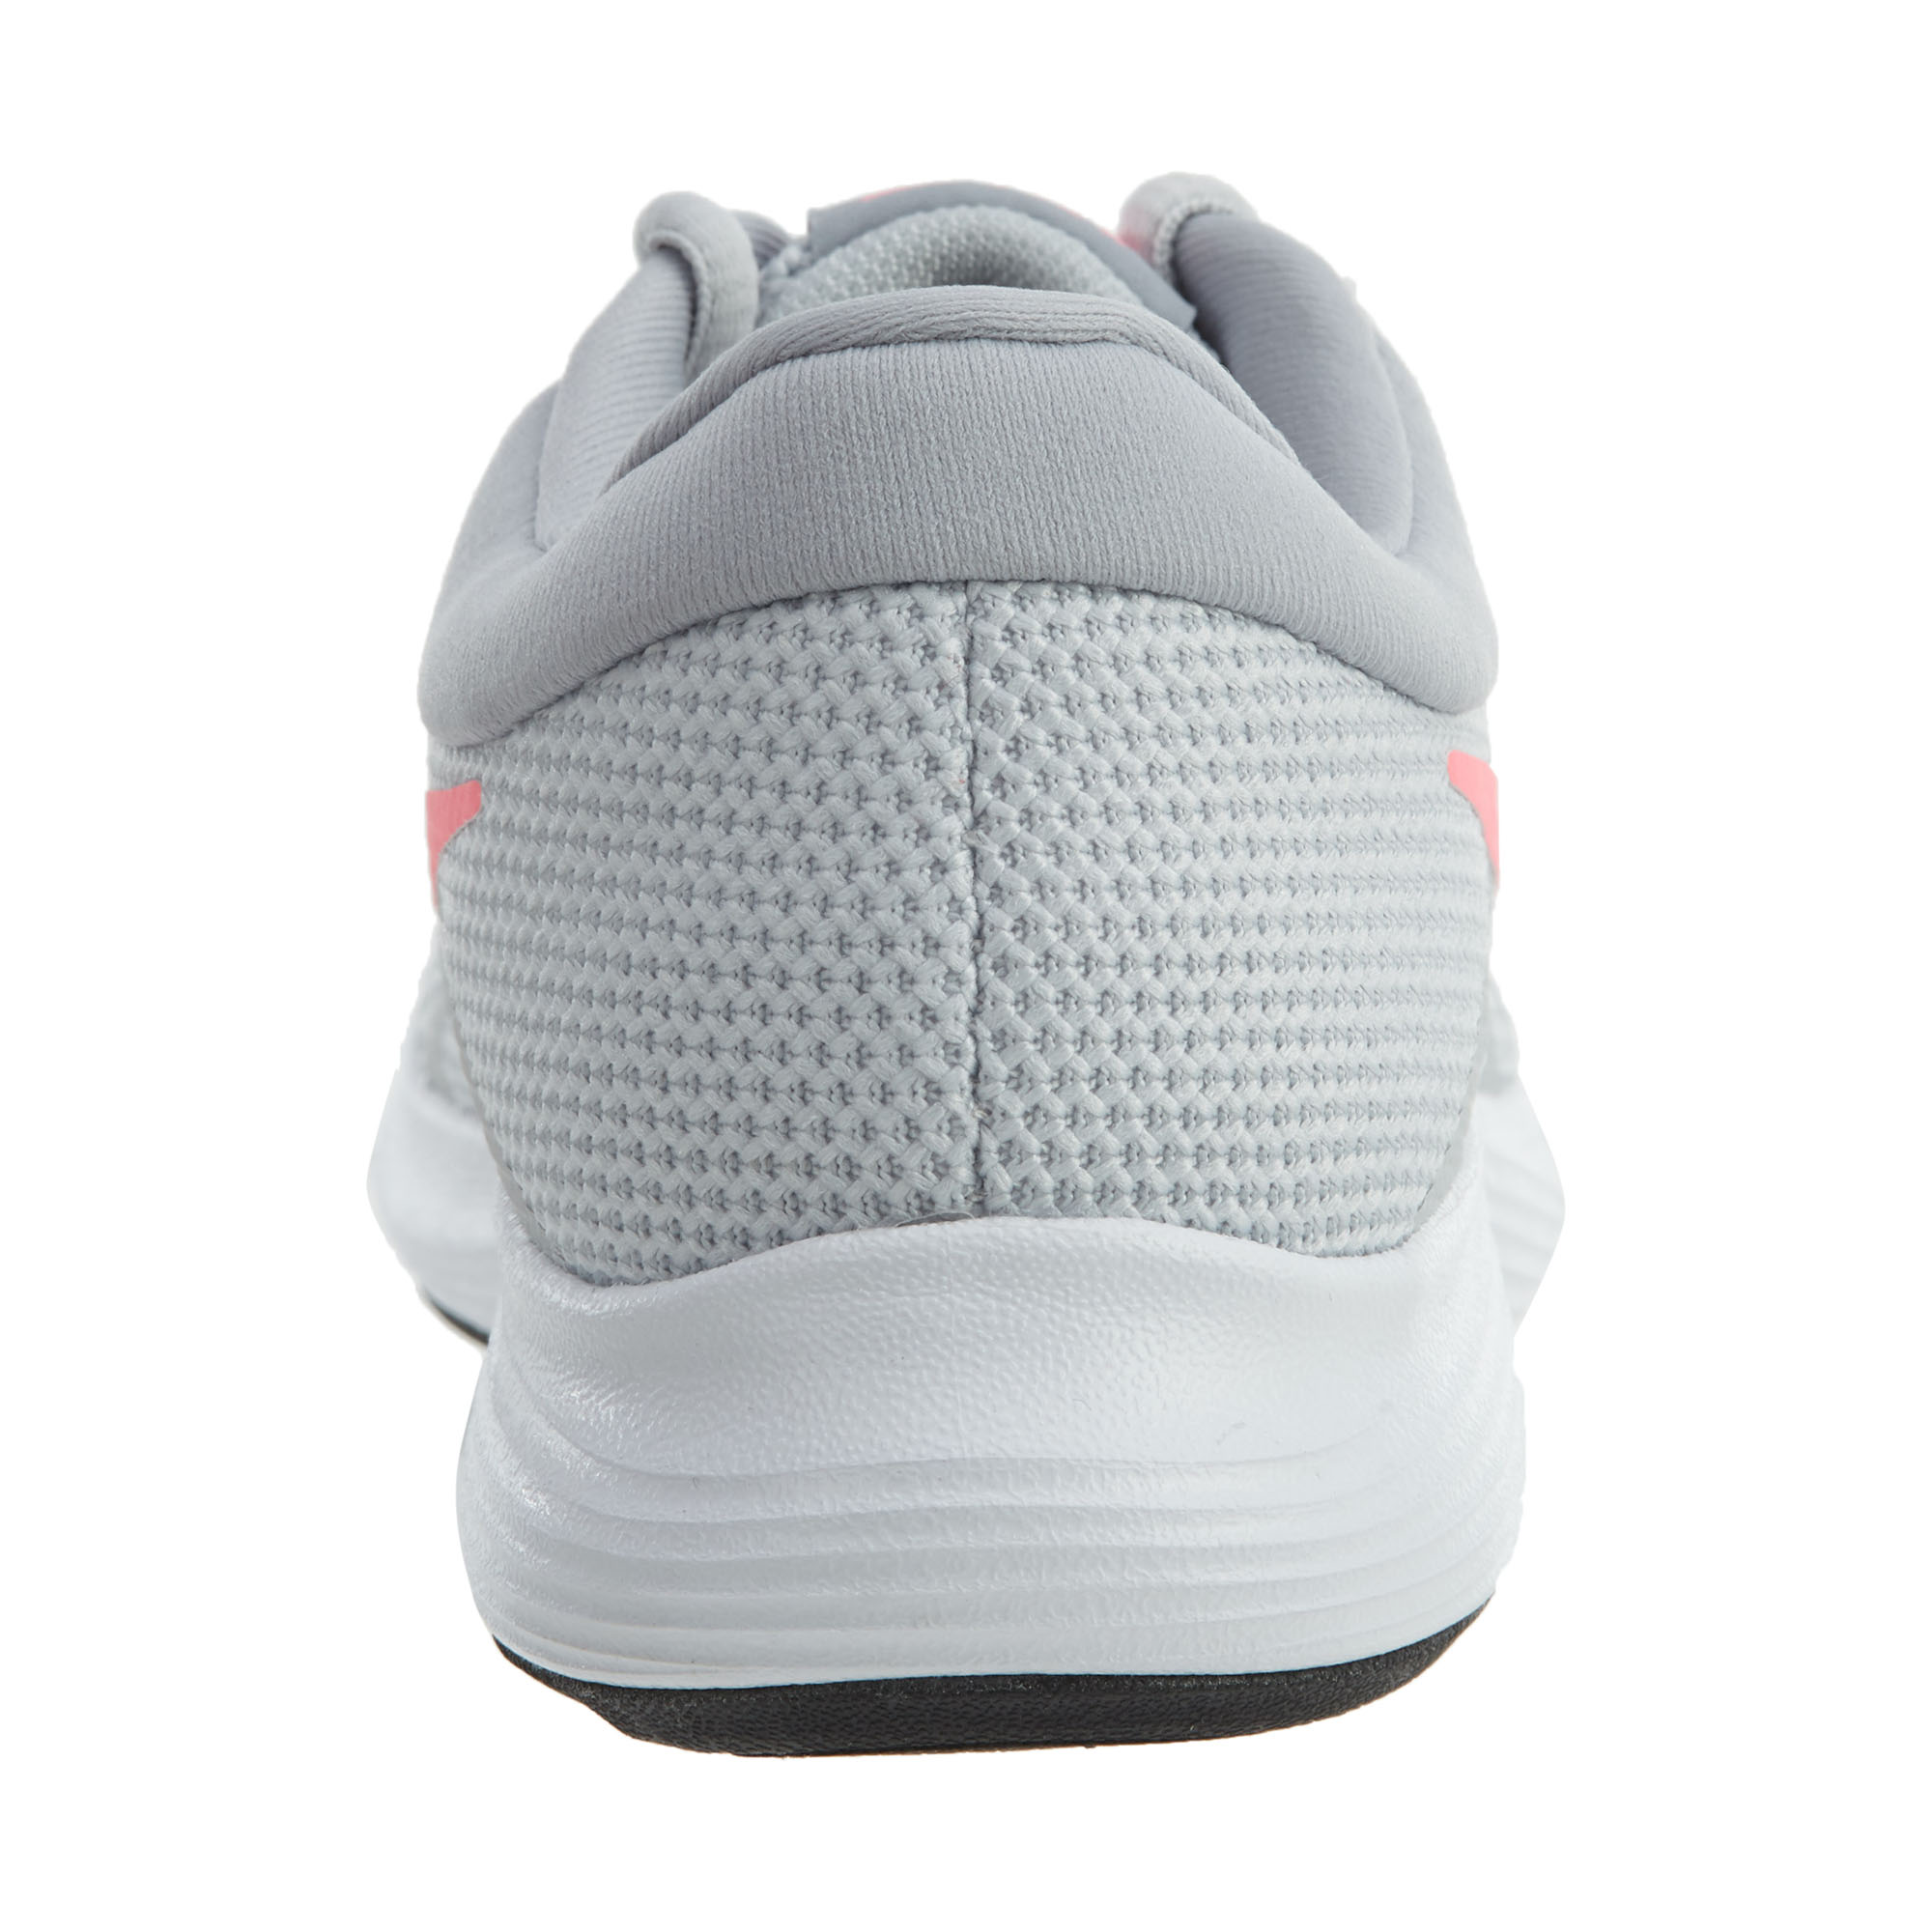 0af44ad1f6724 Nike Womens Revolution 4 Running Shoes. Item Description. Brand  Nike.  Condition  New with box. Color  Pure Platinum Sunset Pulse